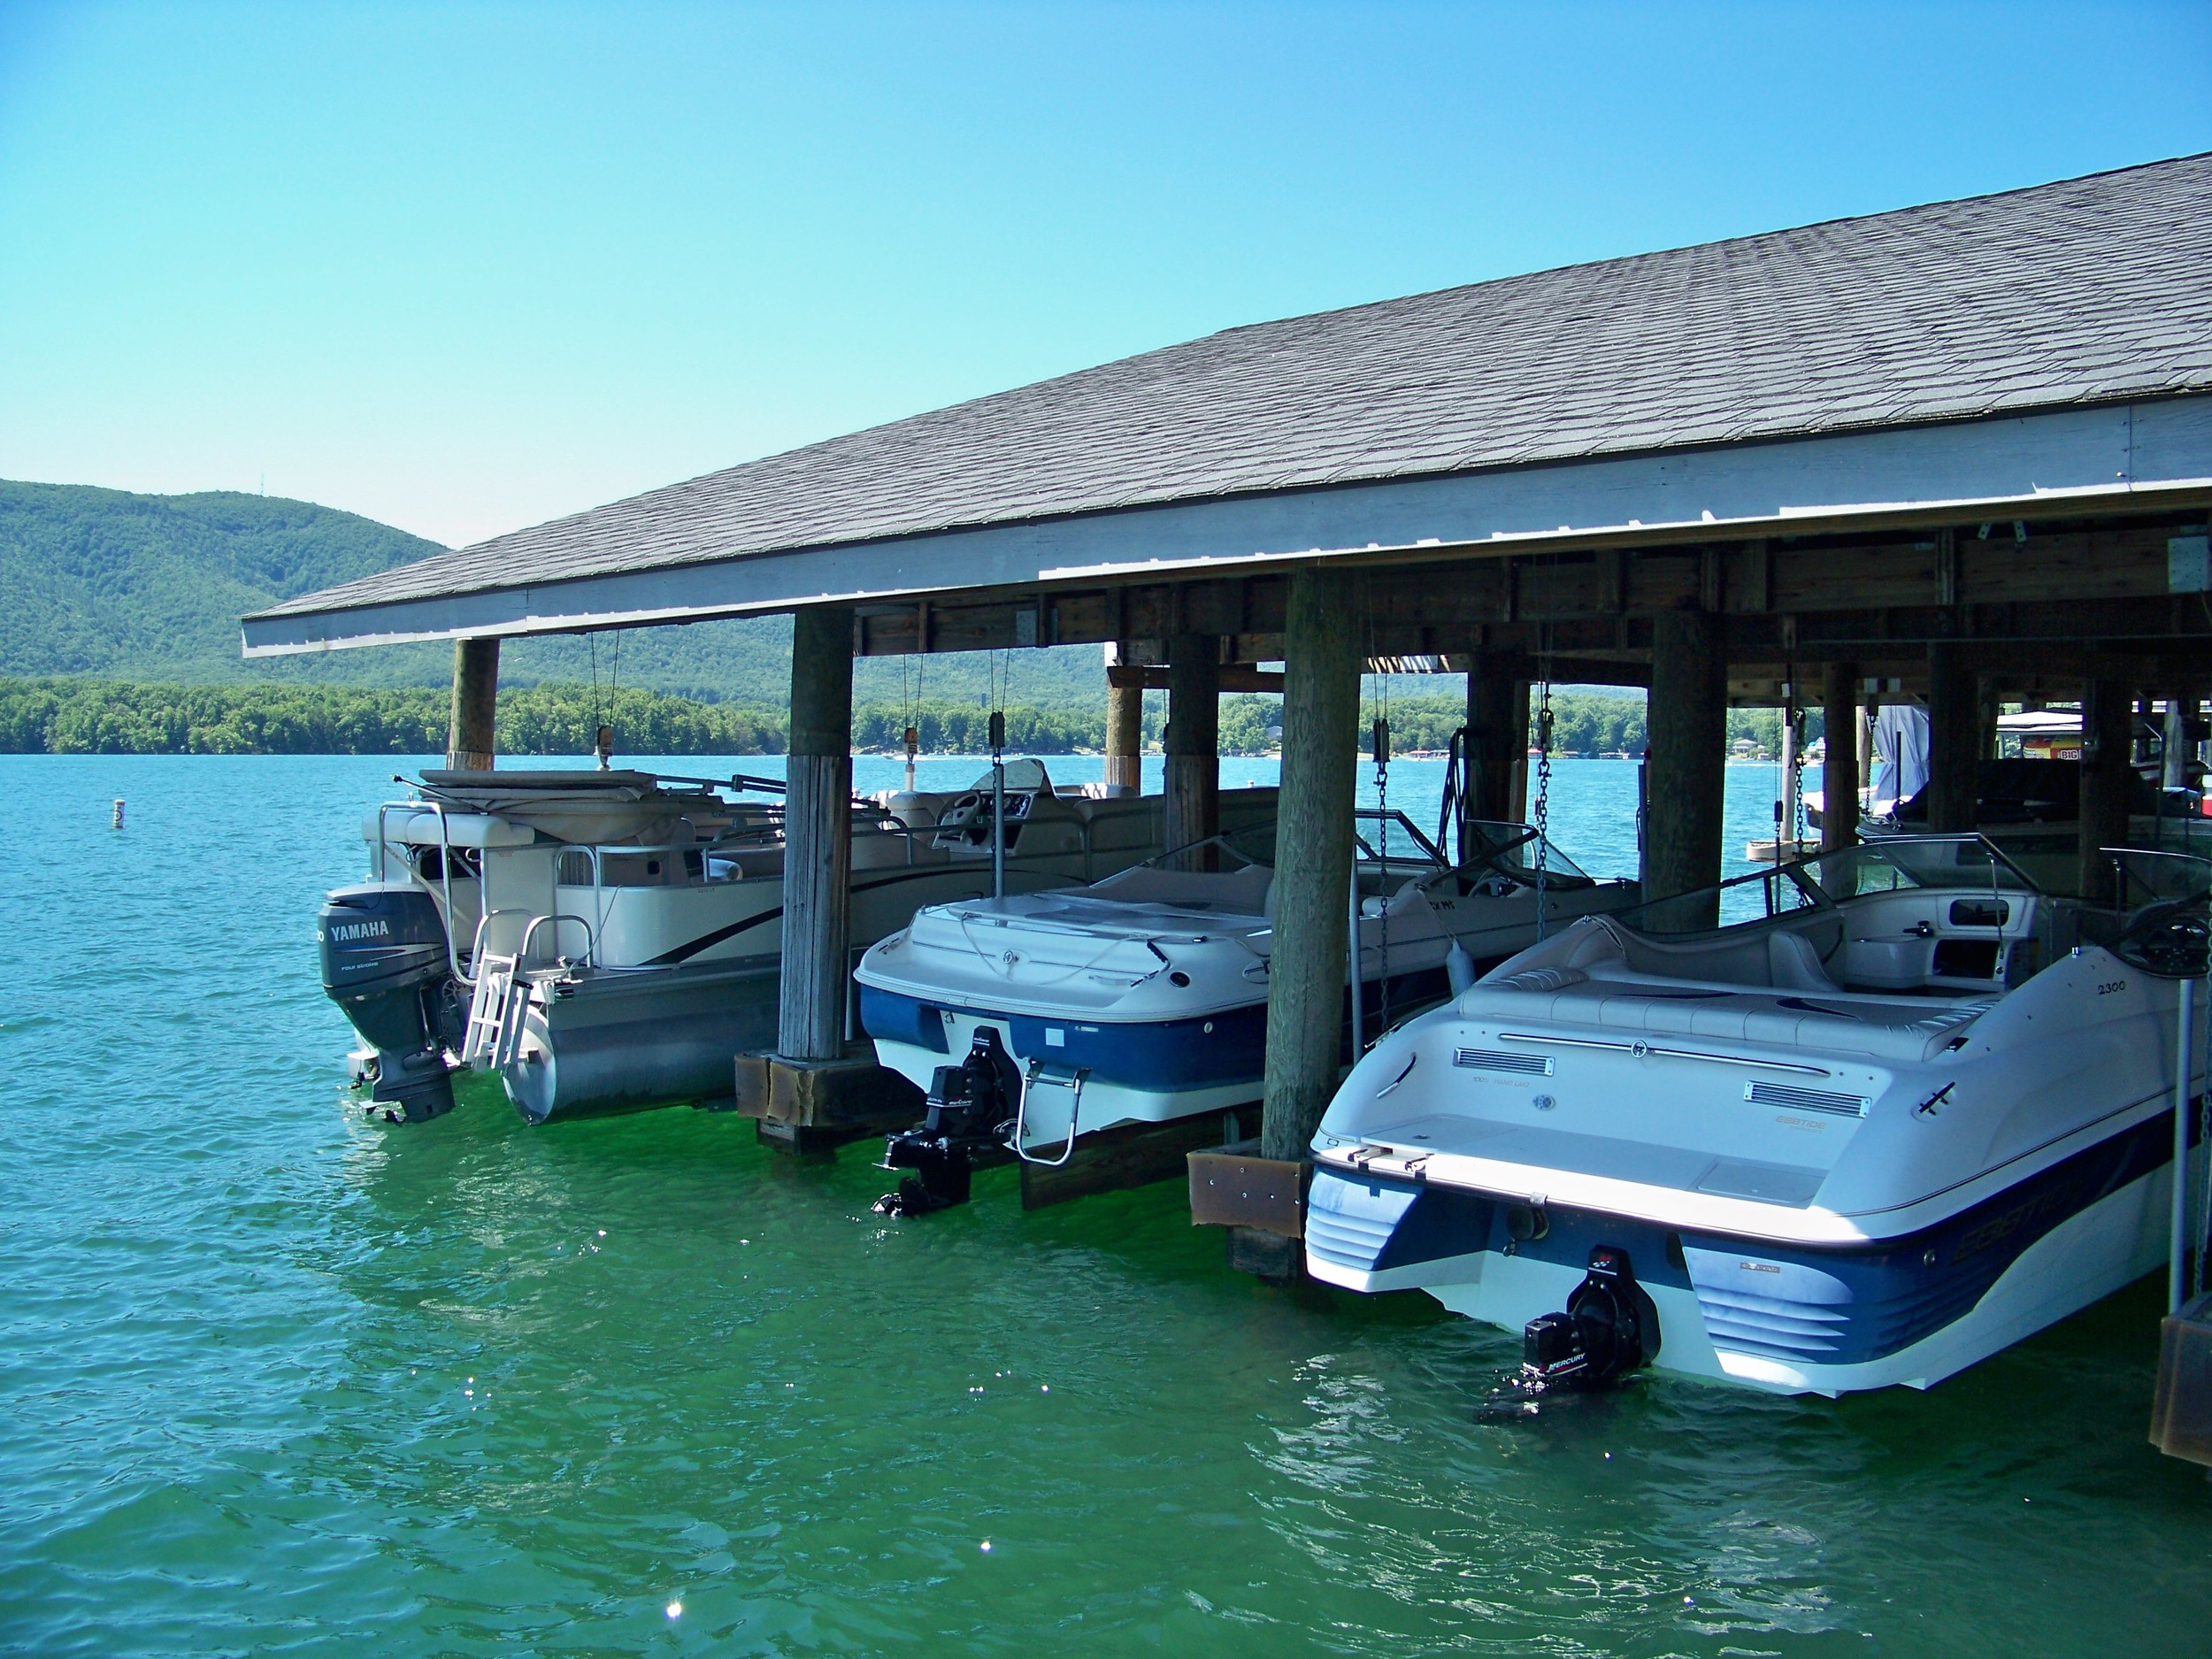 Covered boat docks, blue skies, and shadows how would you approach and fish this spot?